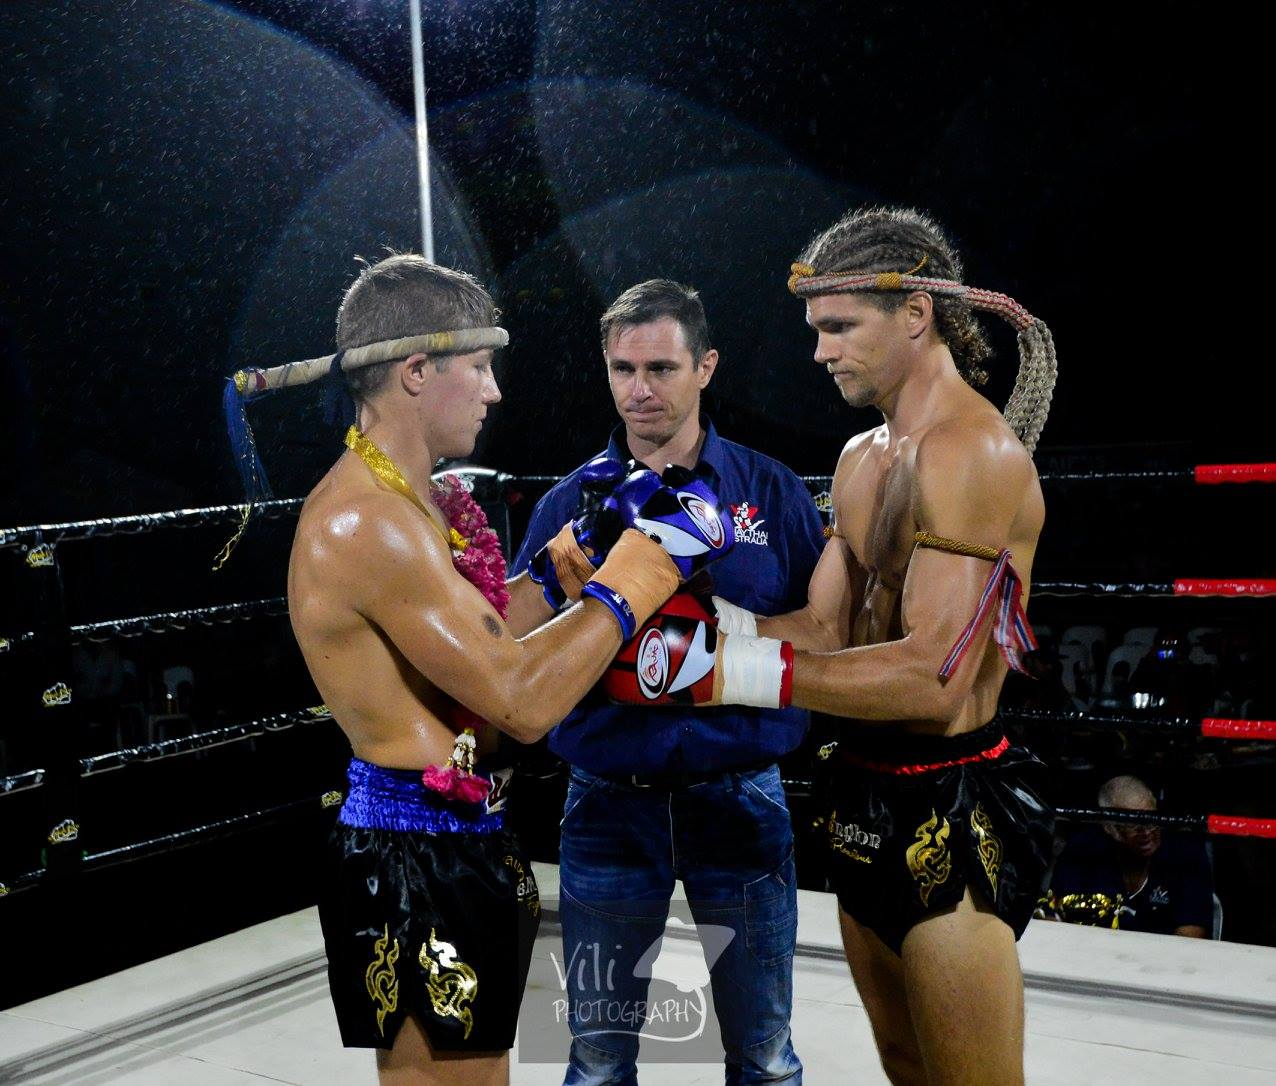 two men about to compete in muay thai